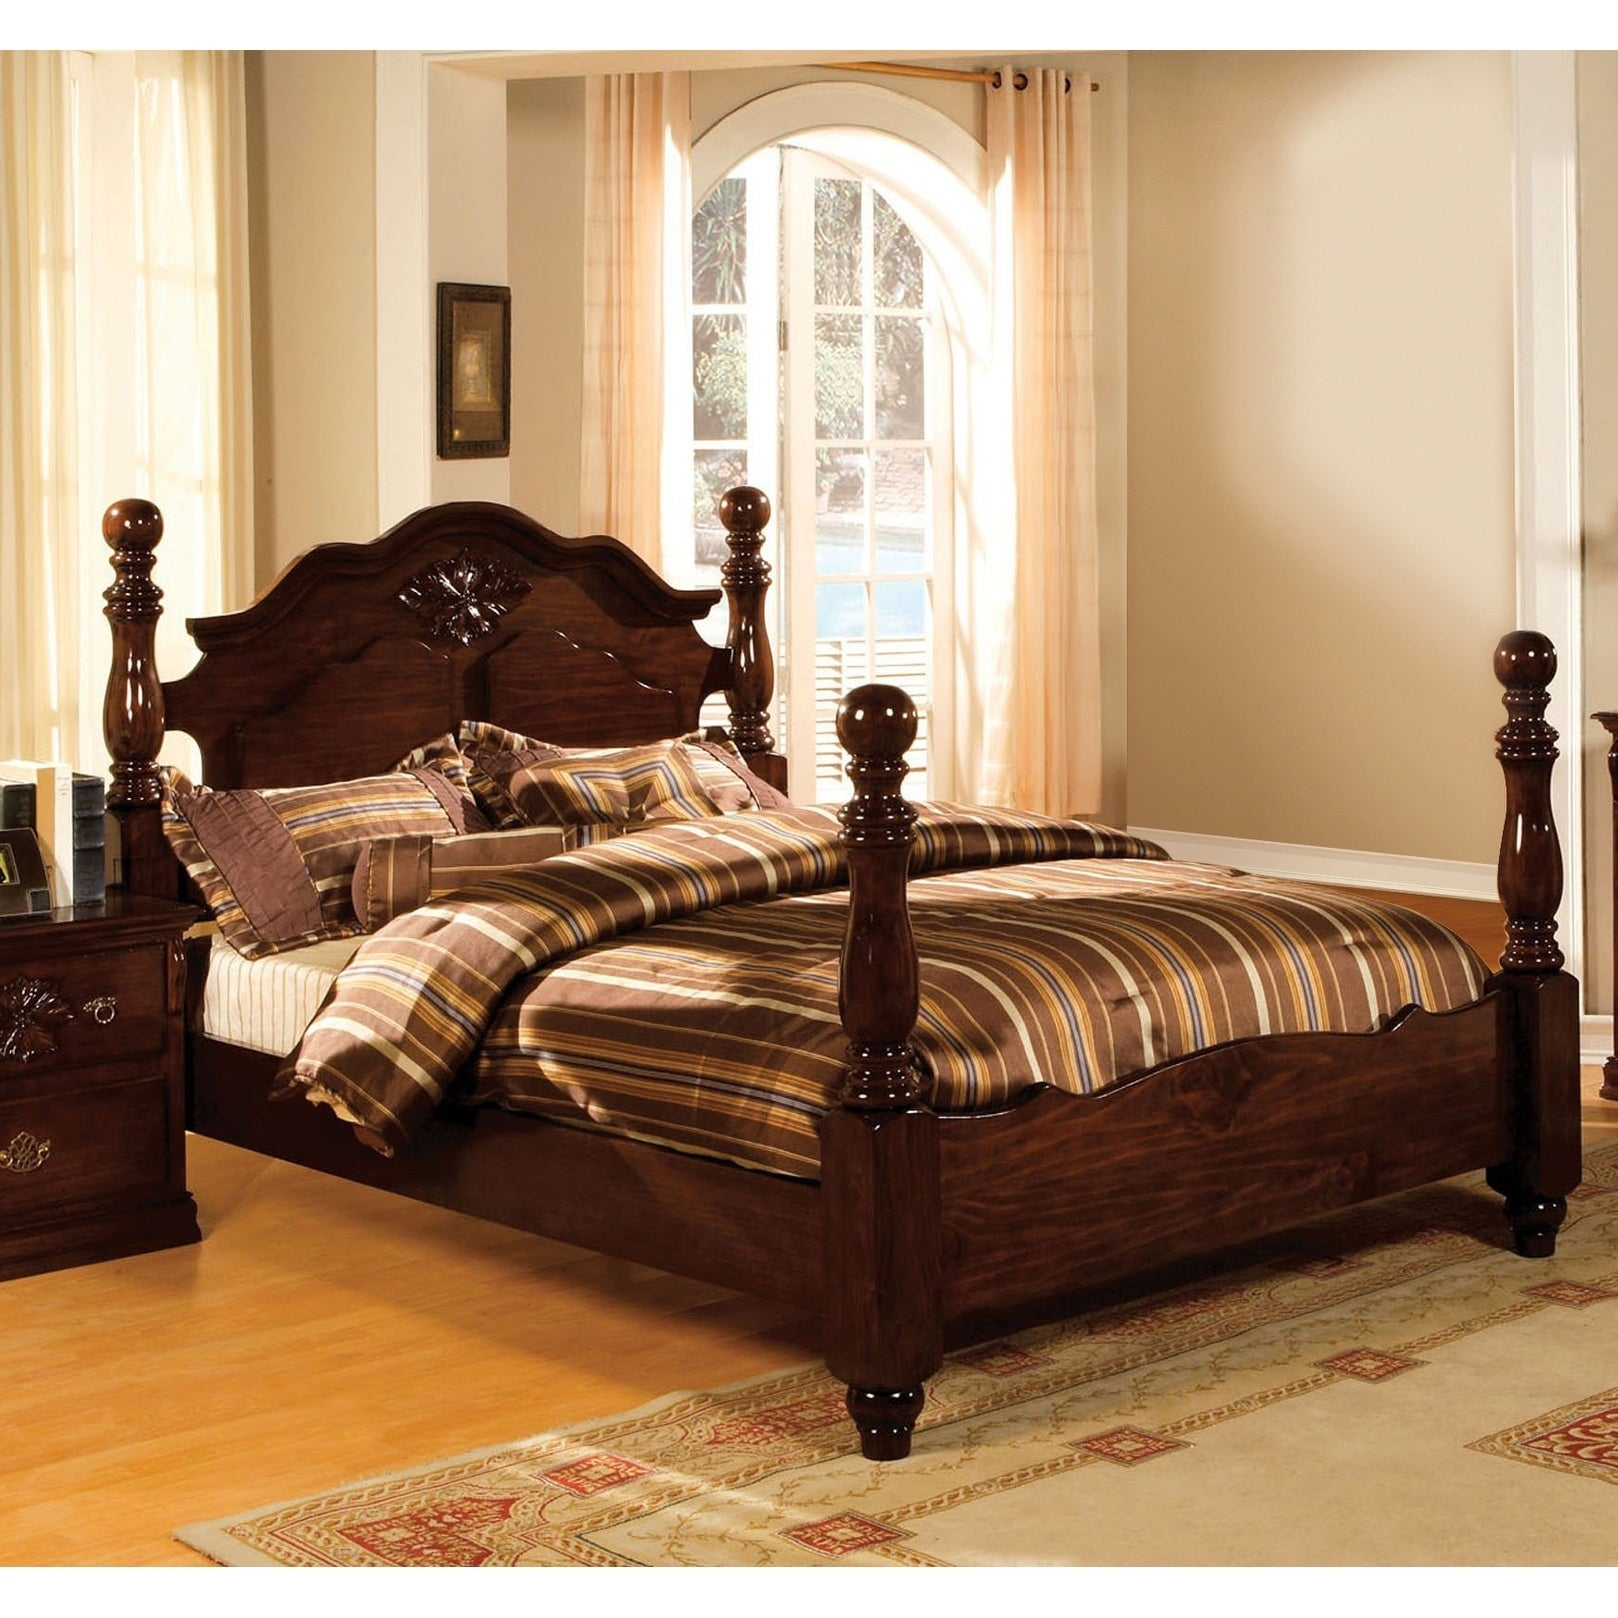 Furniture of America Weston Traditional Pine Four Poster Bed